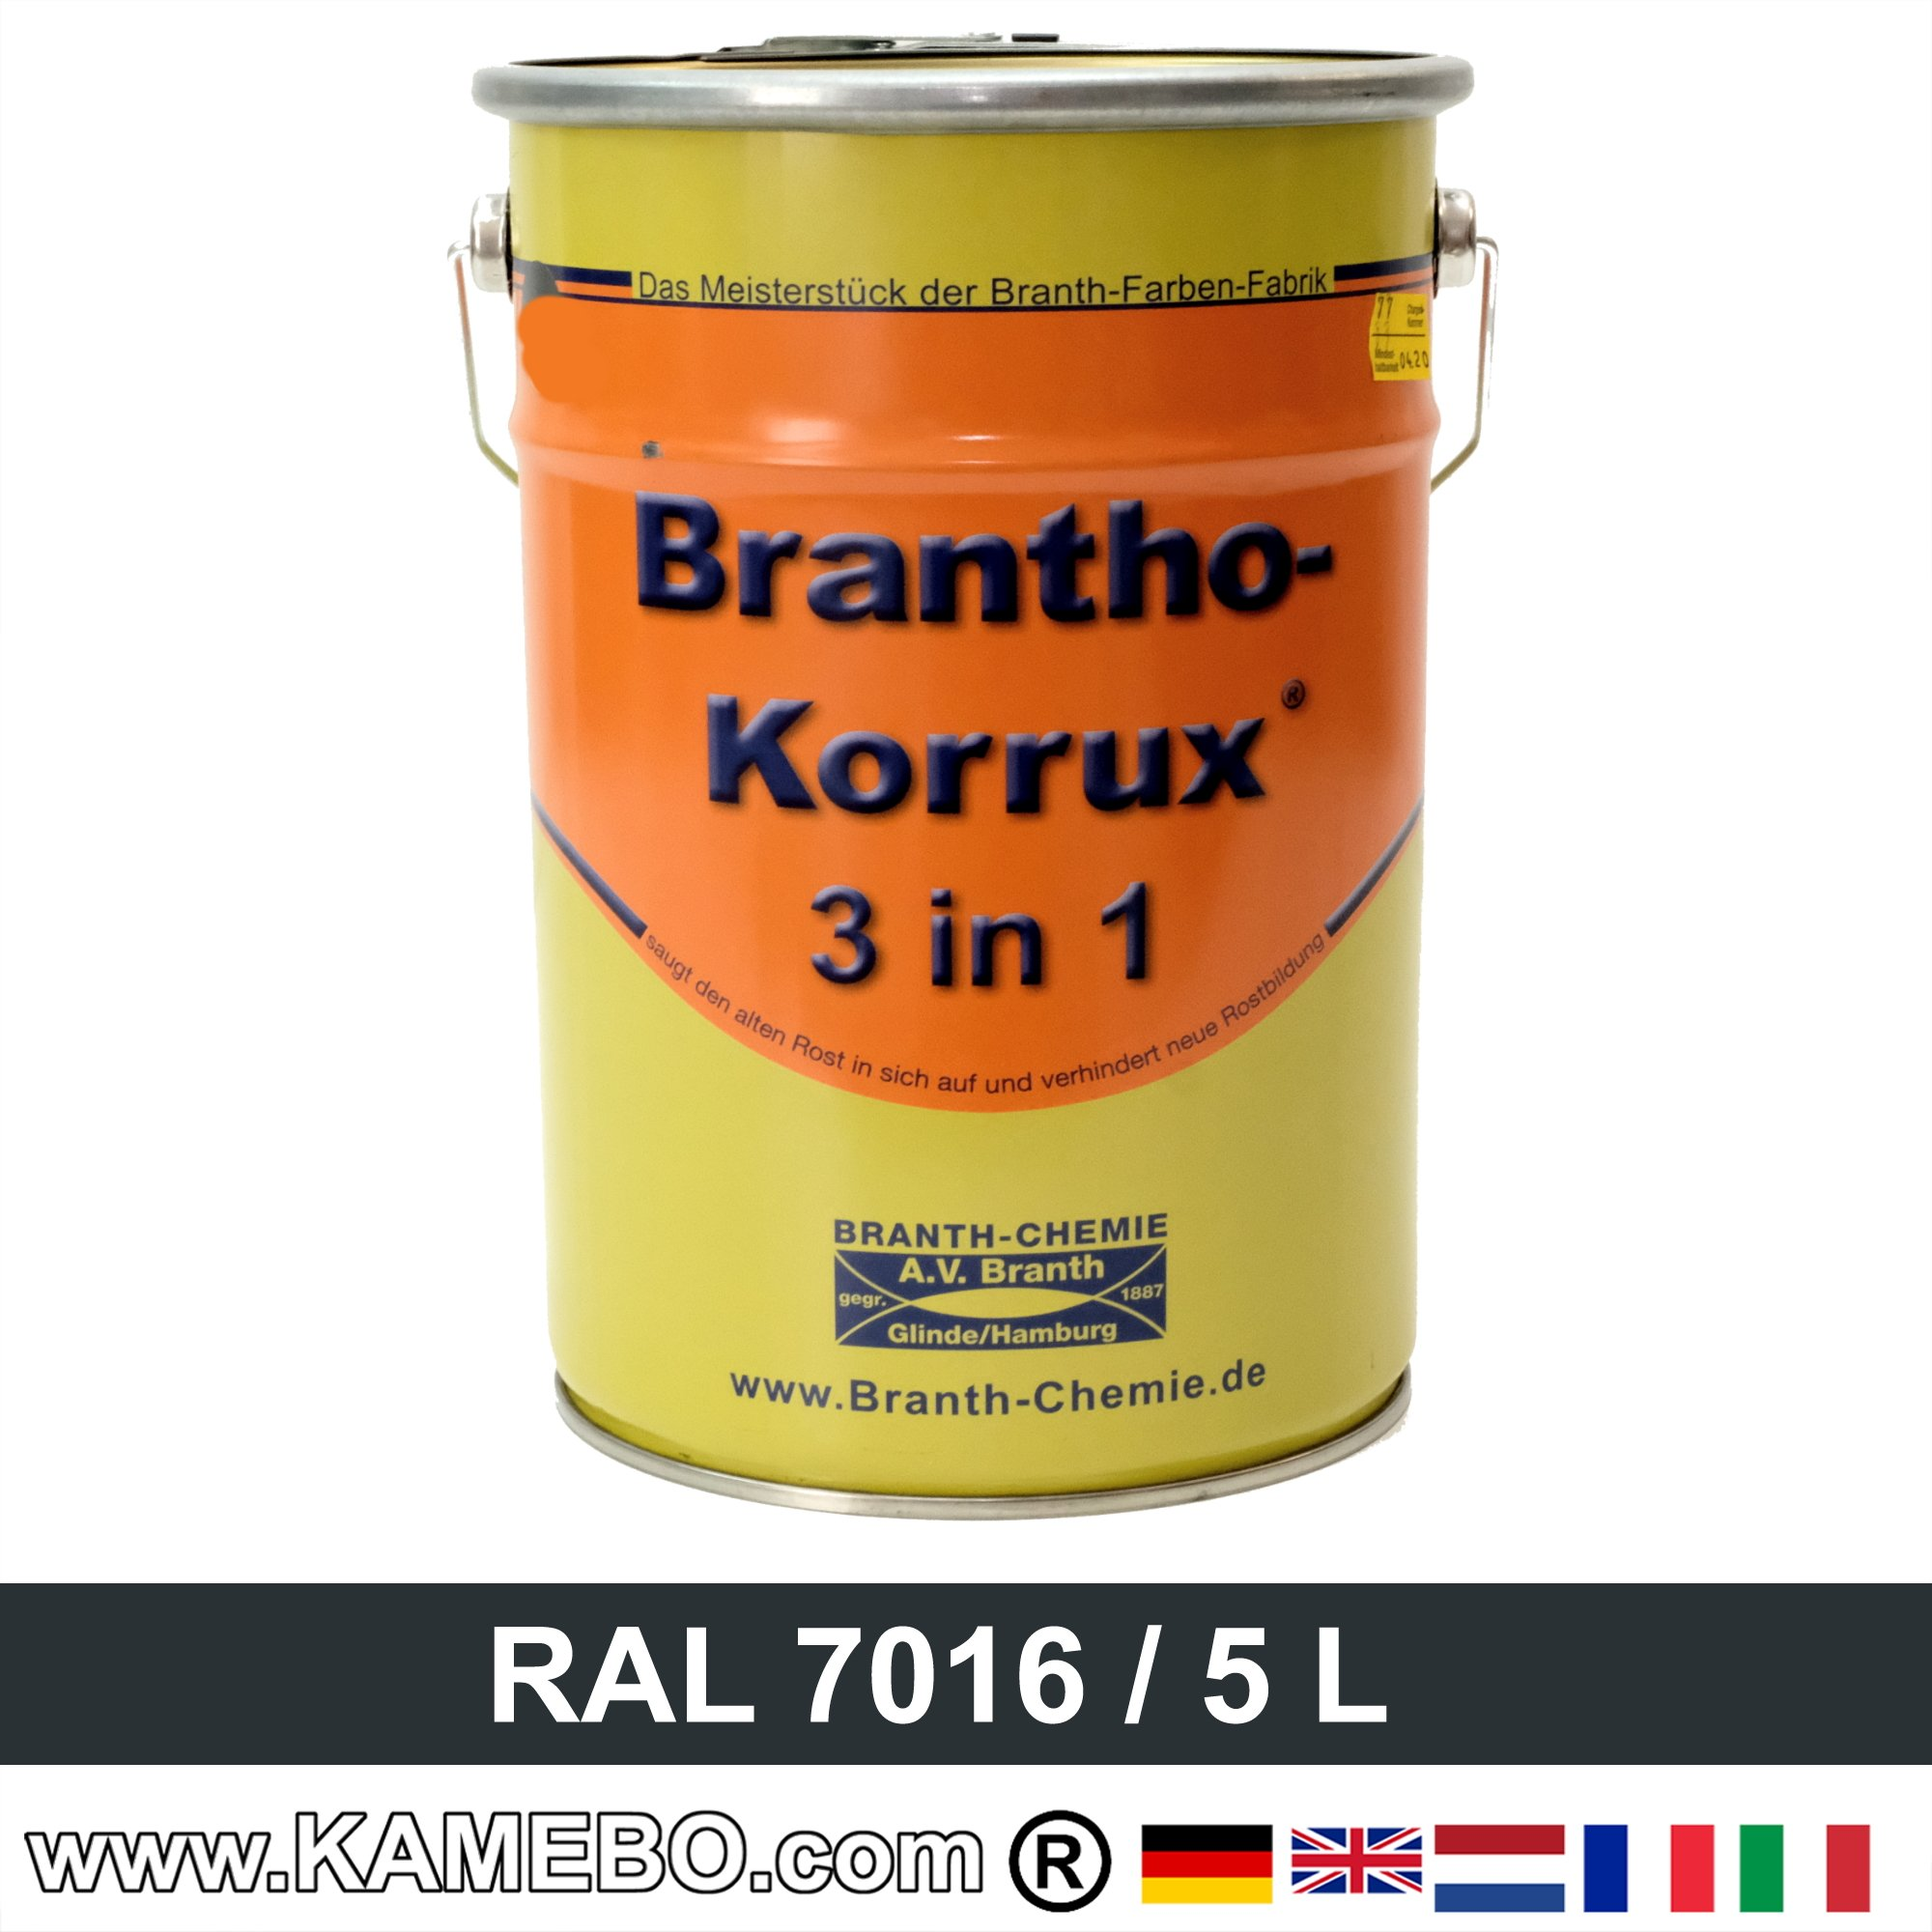 brantho korrux 3in1 peinture antirouille ral 7016 gris anthracite 5 litres kamebo. Black Bedroom Furniture Sets. Home Design Ideas